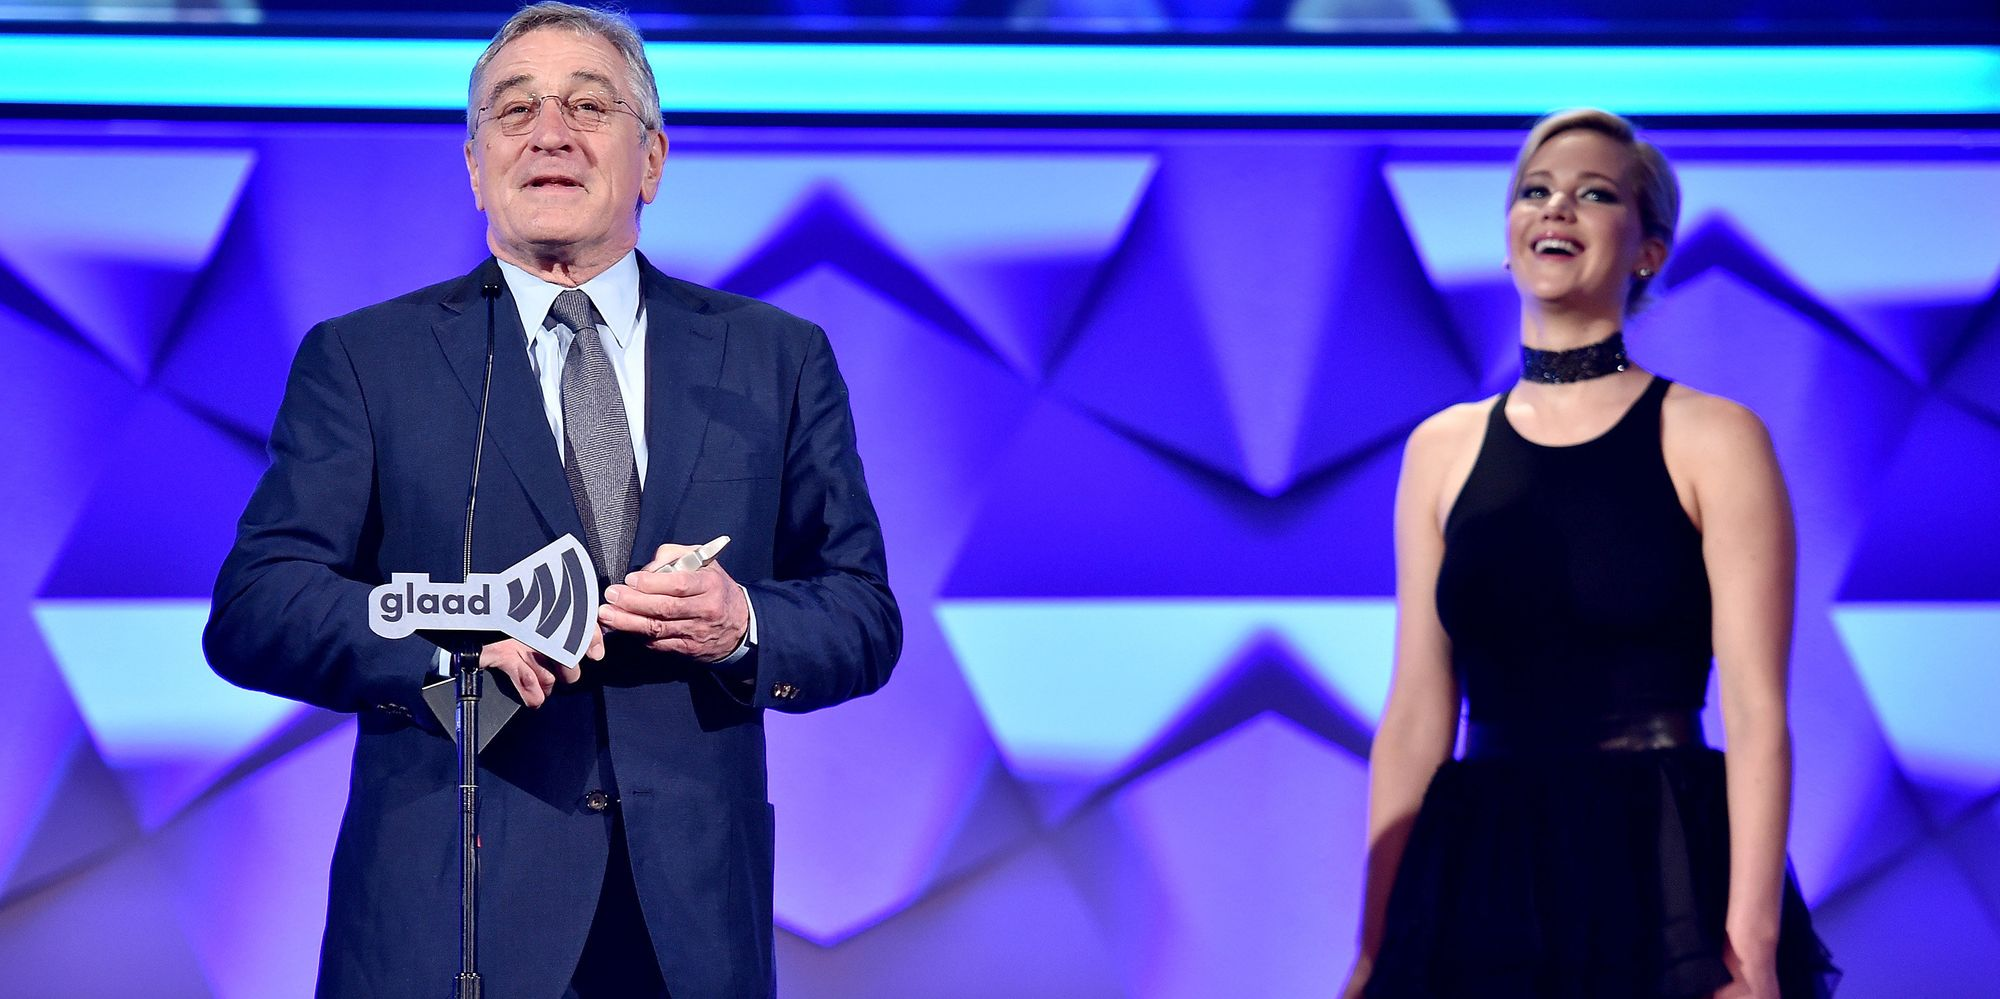 Jennifer Lawrence Honored Robert De Niro At The GLAAD Media Awards The Only Way She Knows How